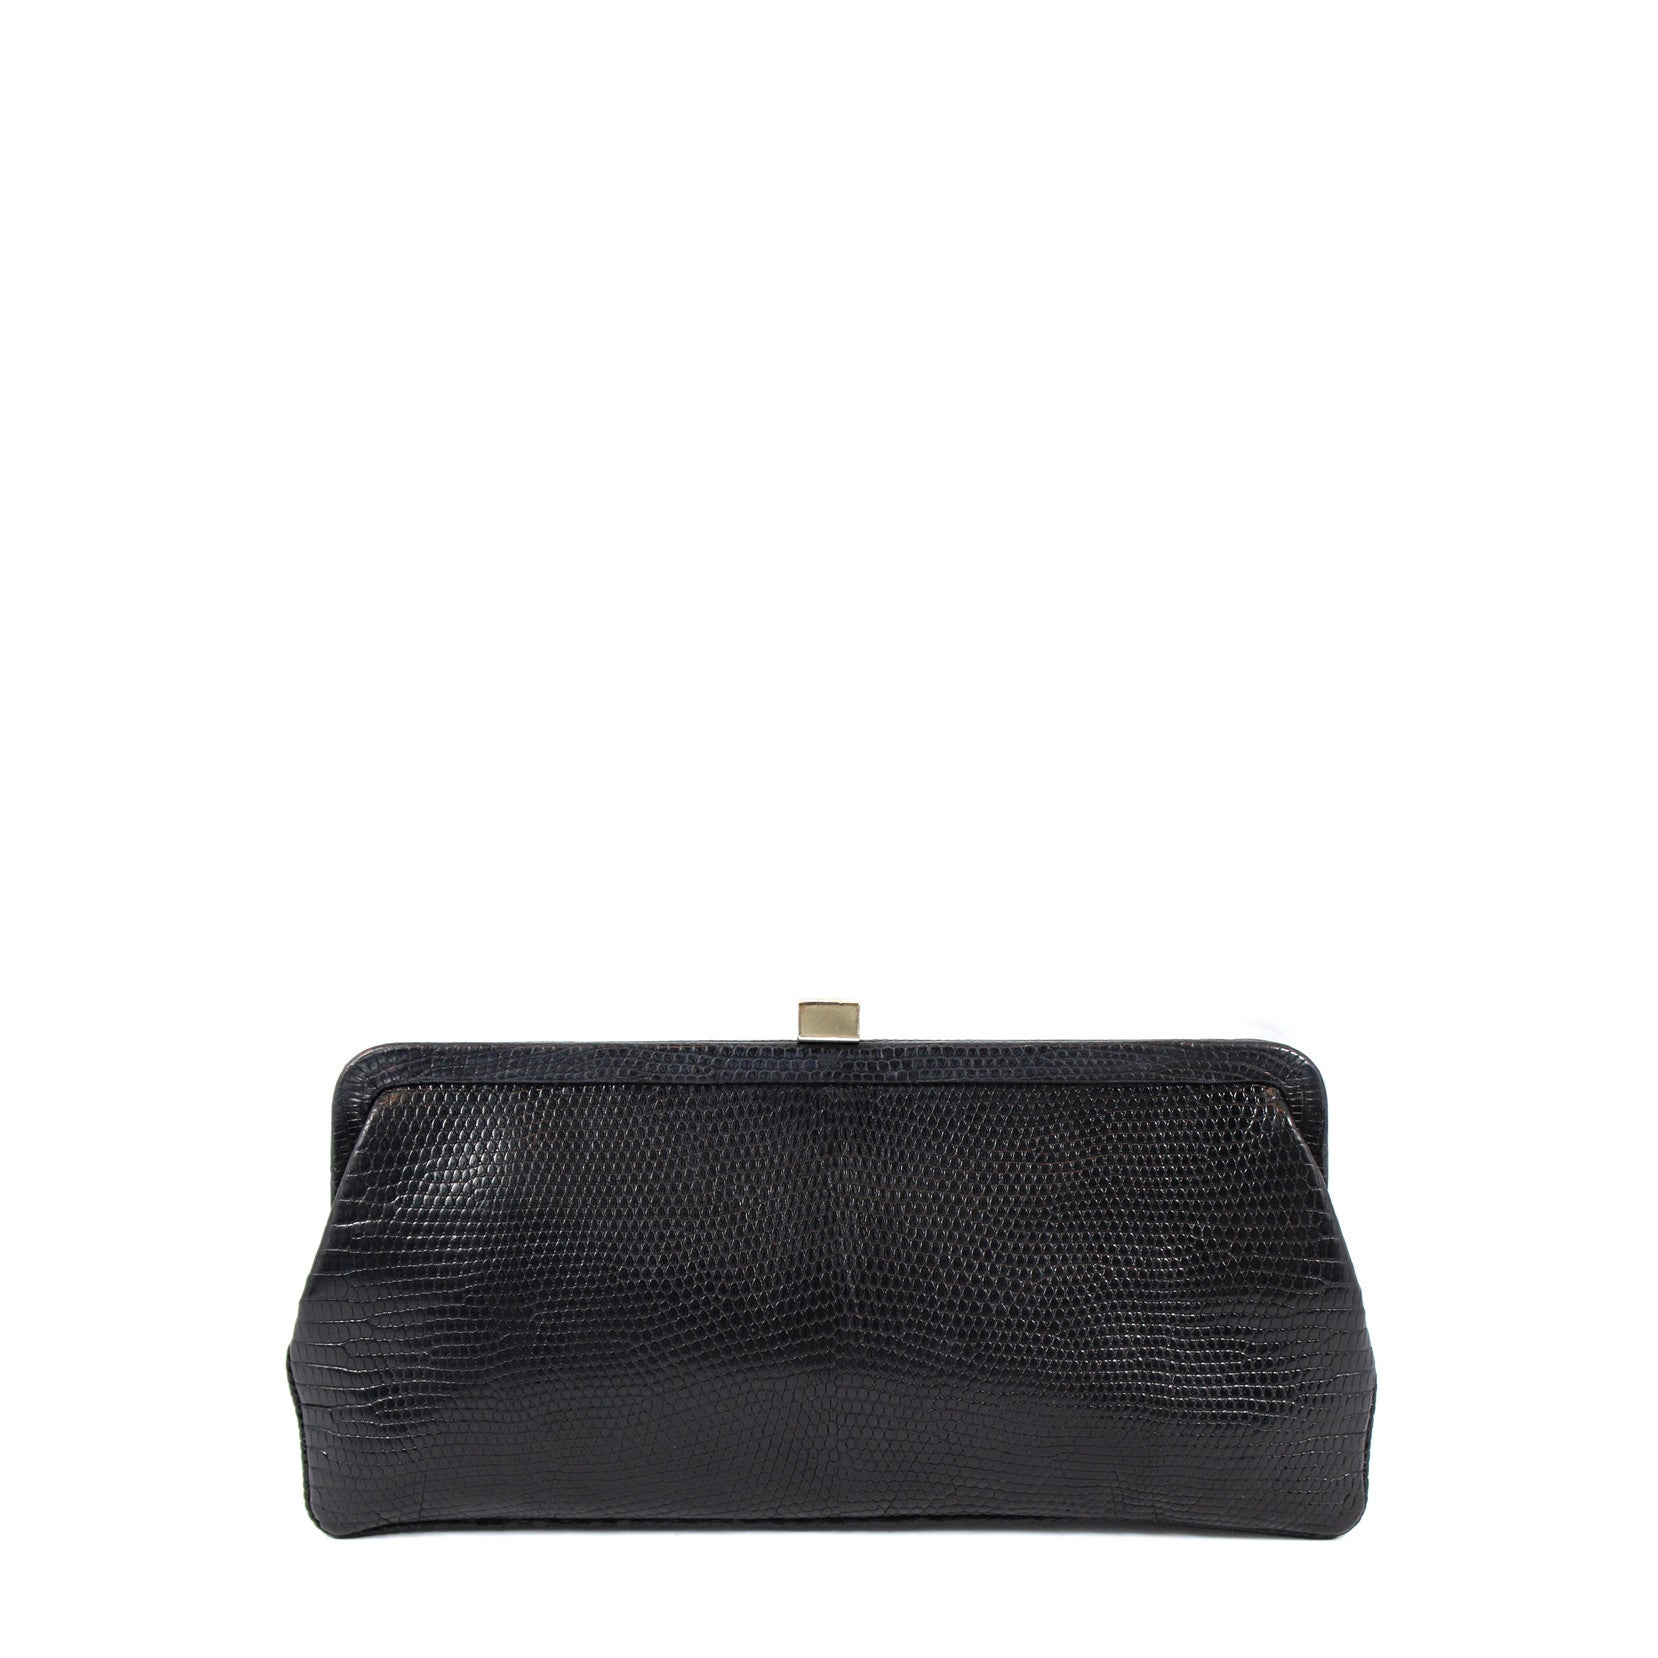 Lambertson Truex Black Lizard Clutch - Encore Consignment - 1